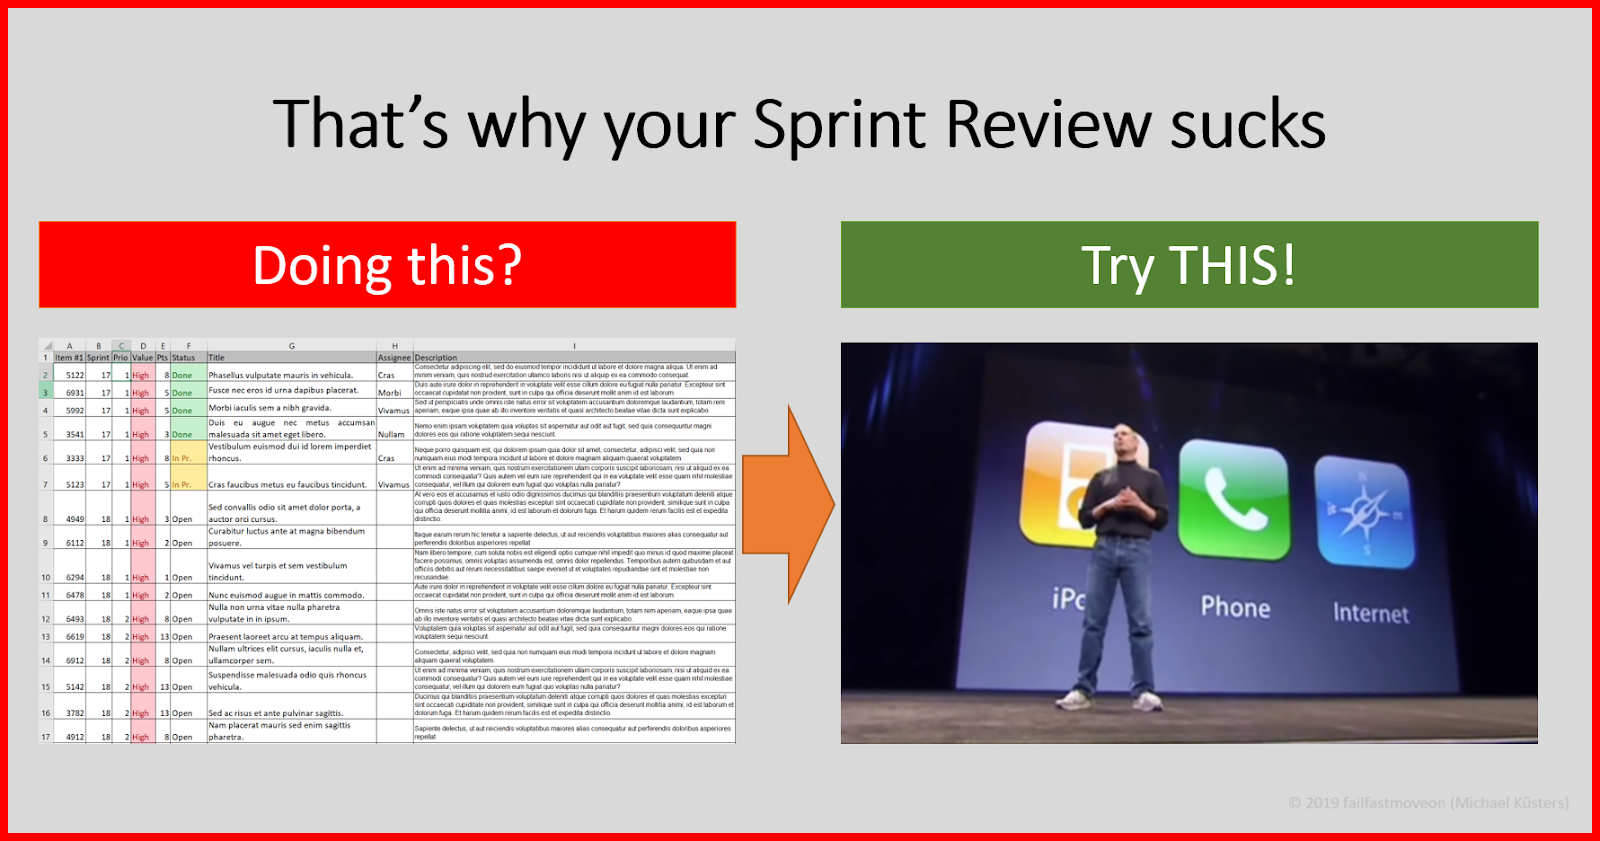 Fail Fast, Move On: Your Sprint Reviews suck, and that's why!